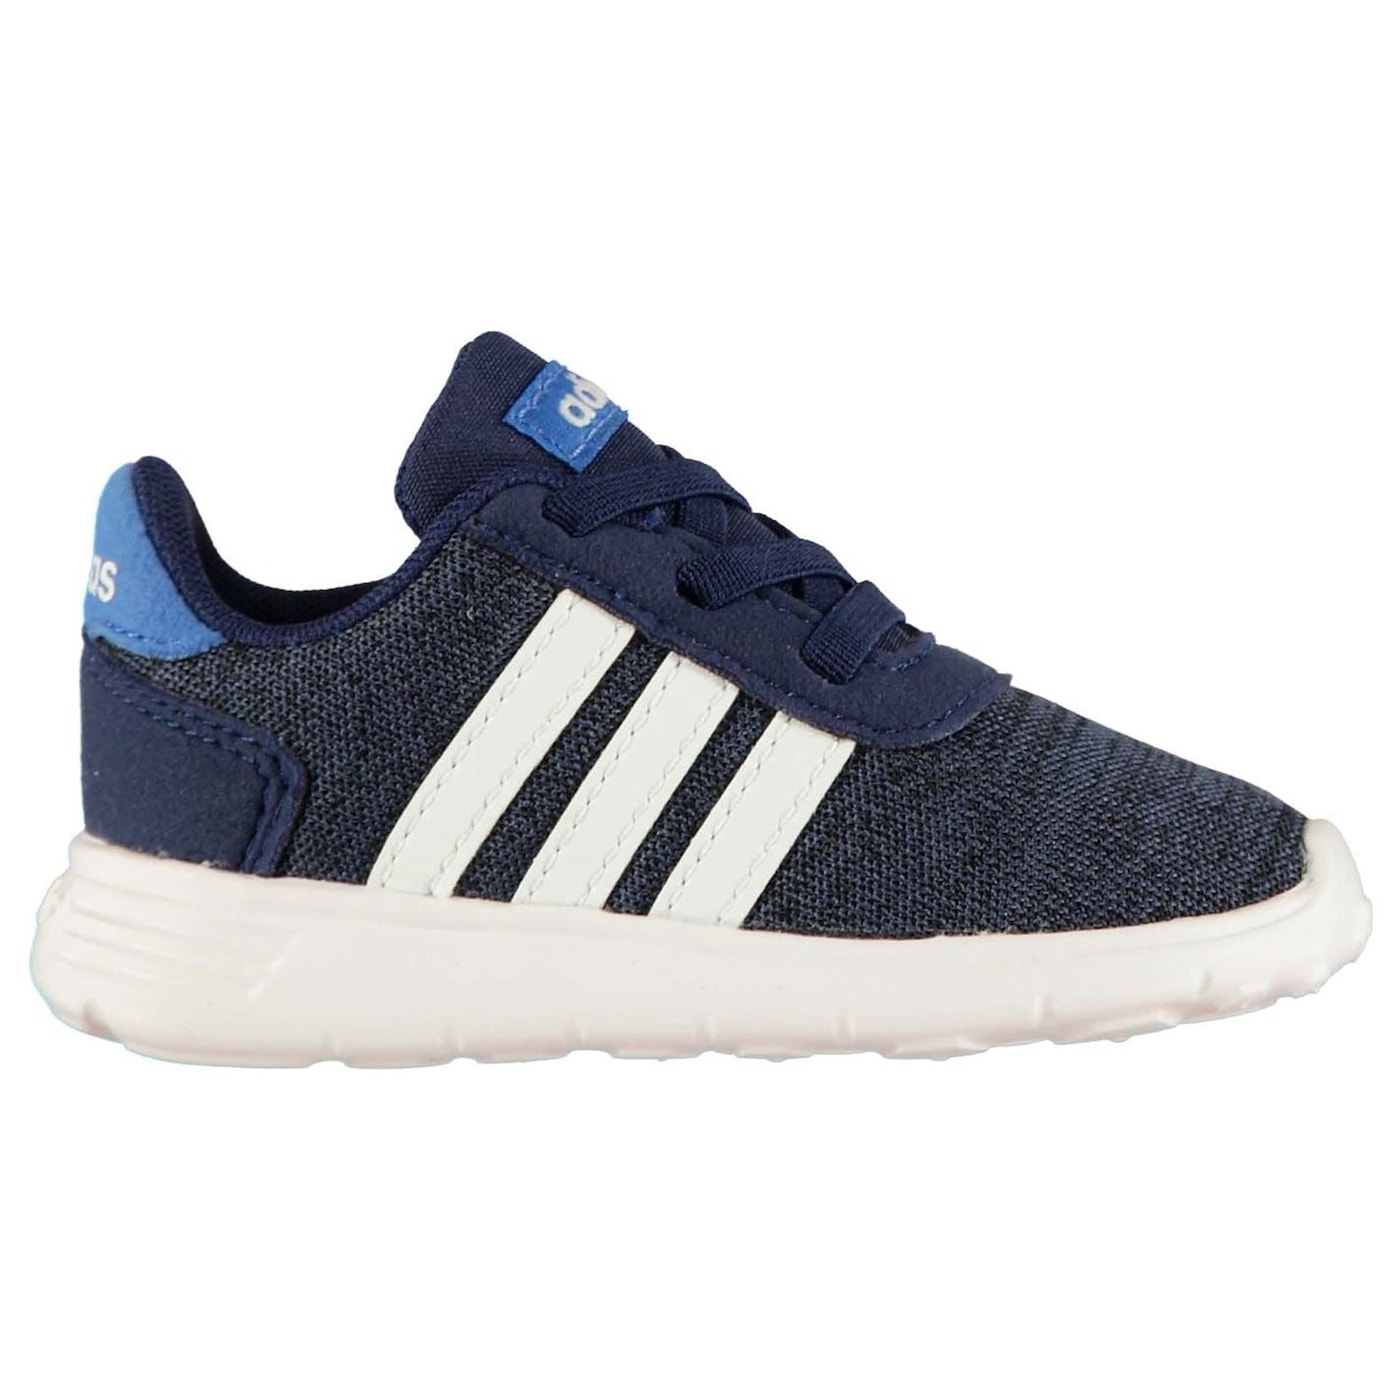 Adidas Lite Racer Infant Boys Trainers